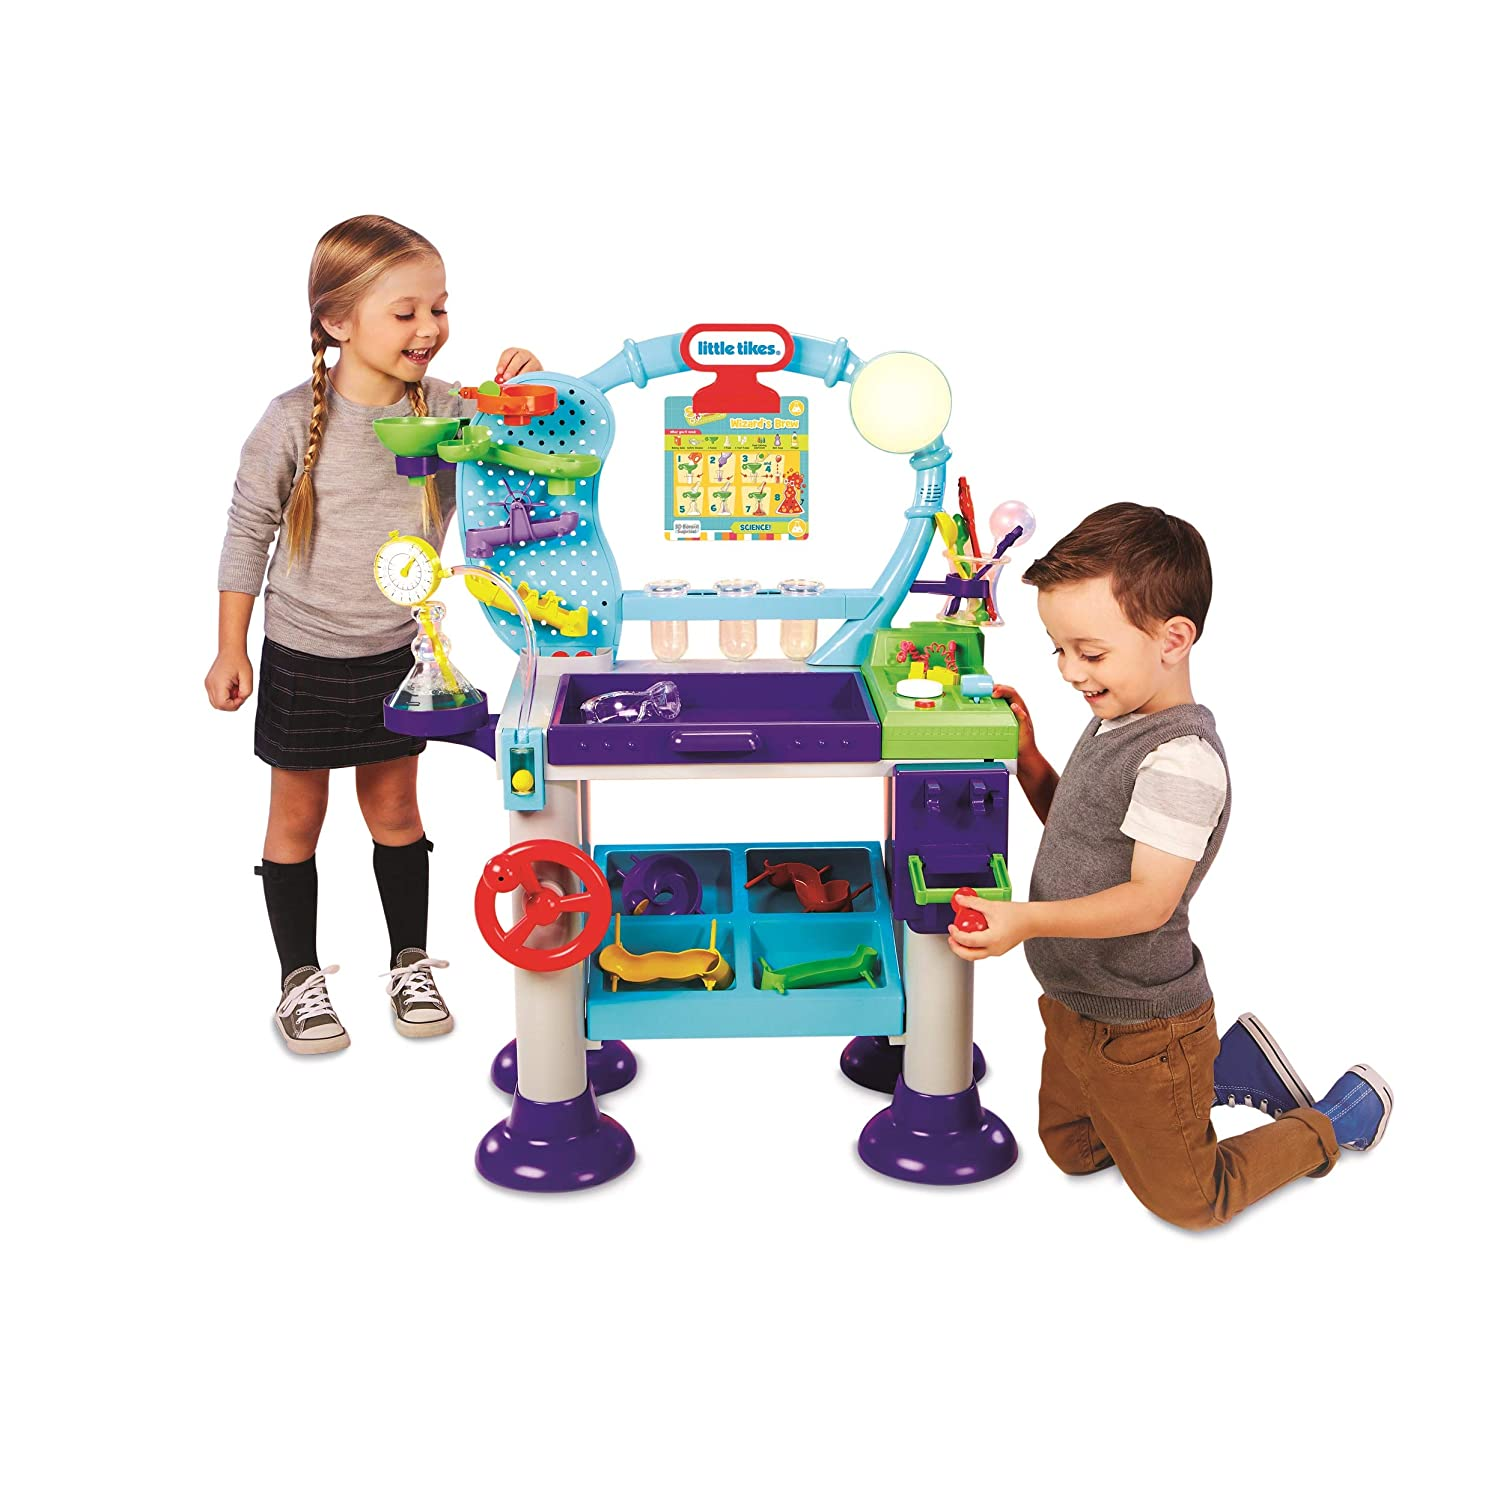 Little Tikes Stem Jr. Wonder Lab Toy